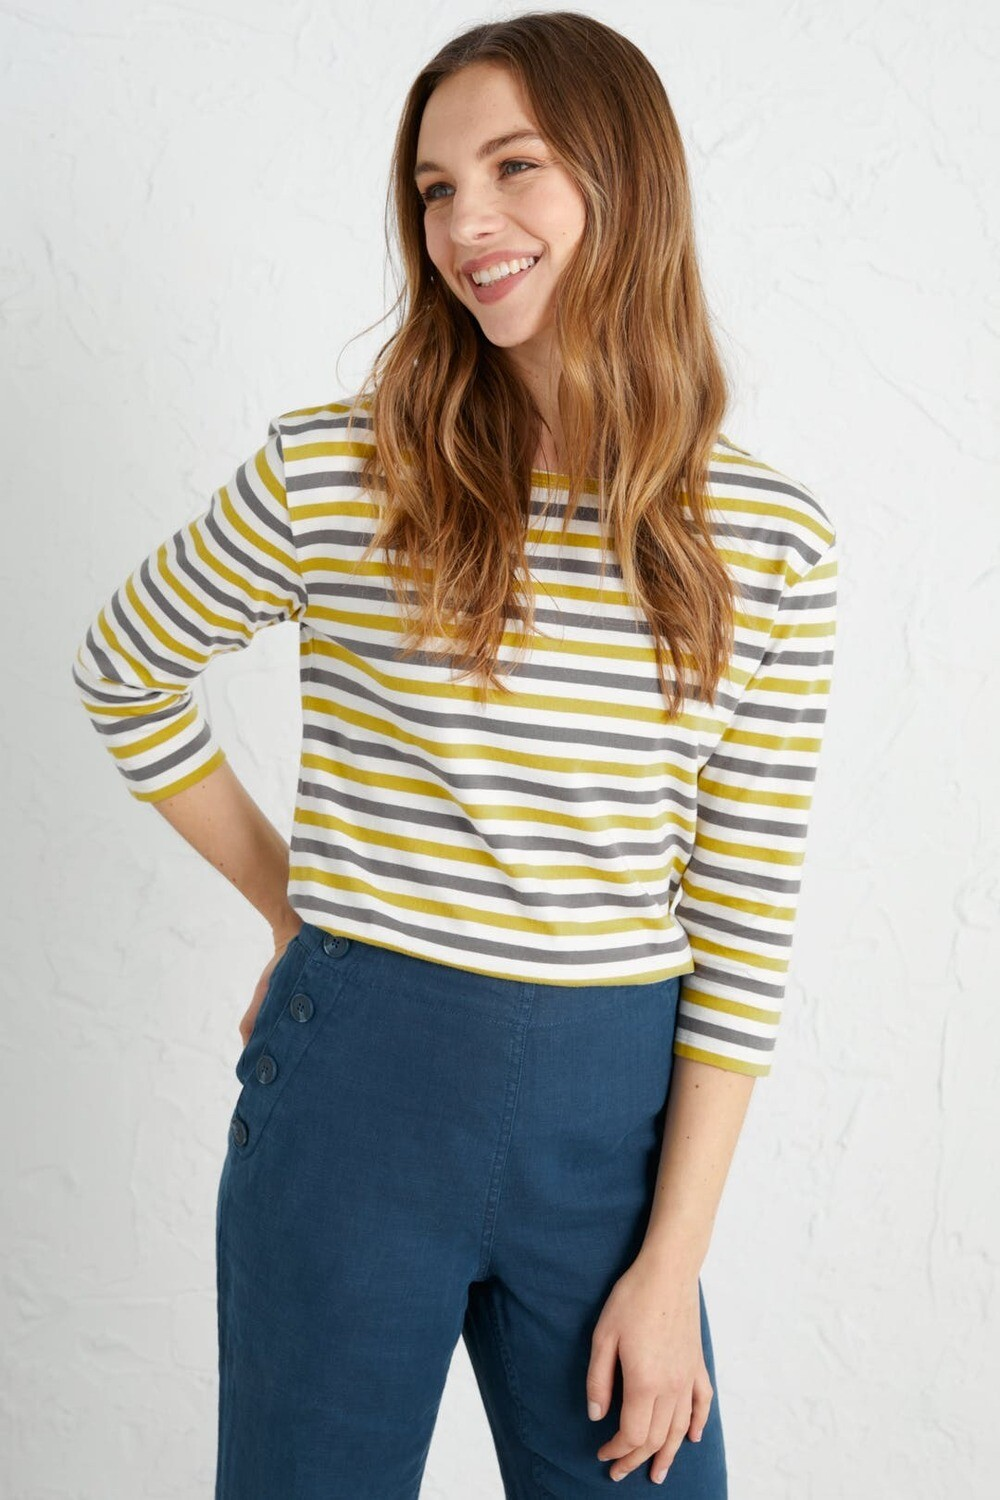 Sailor Top Mini Cornish Duet Dune